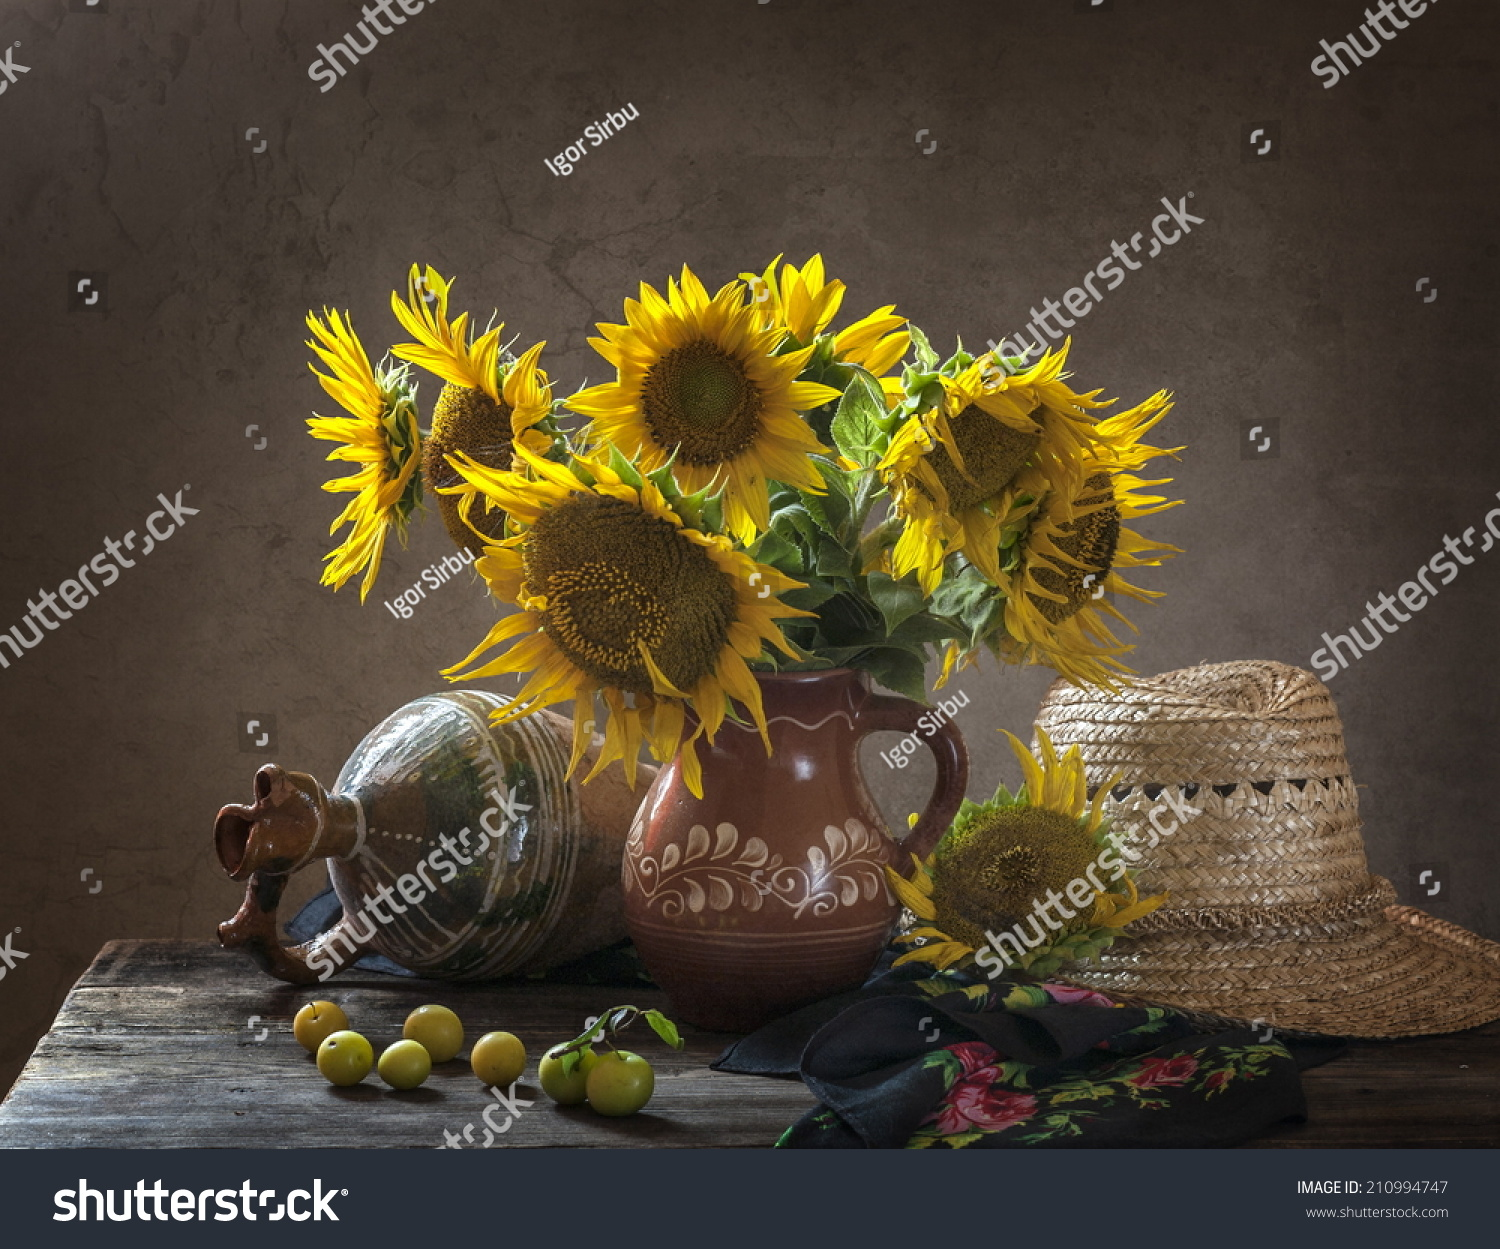 Still Life With Sunflowers On The Table